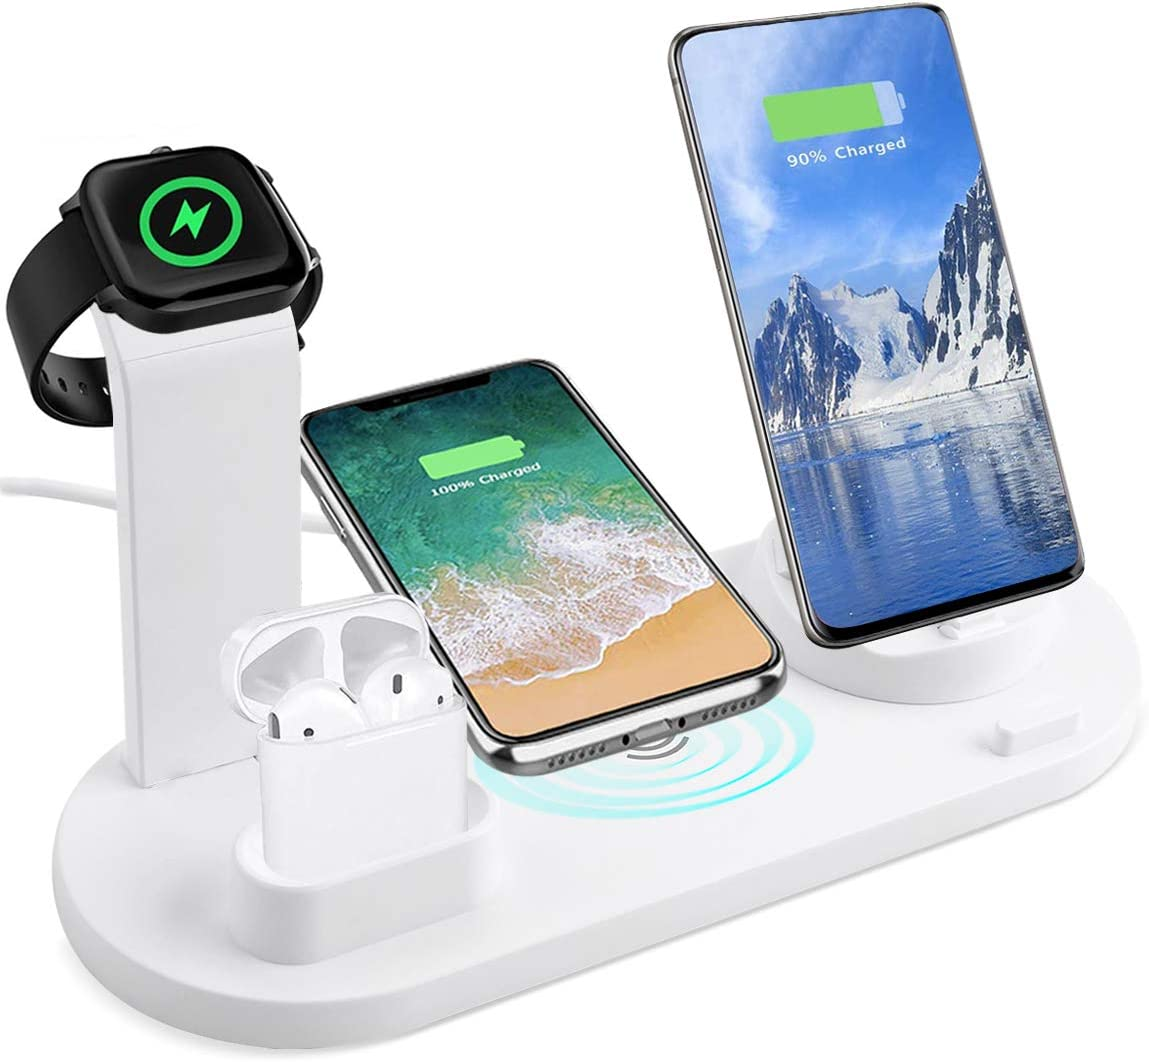 3 in 1 Charger Stand Copatible with iPhone/Android/Type-C with USB Port for Apple Watch,Qi Fast Wireless Charging Dock Station for AirPods/iPhone/Samsung/Huawei/LG/HTC(White)